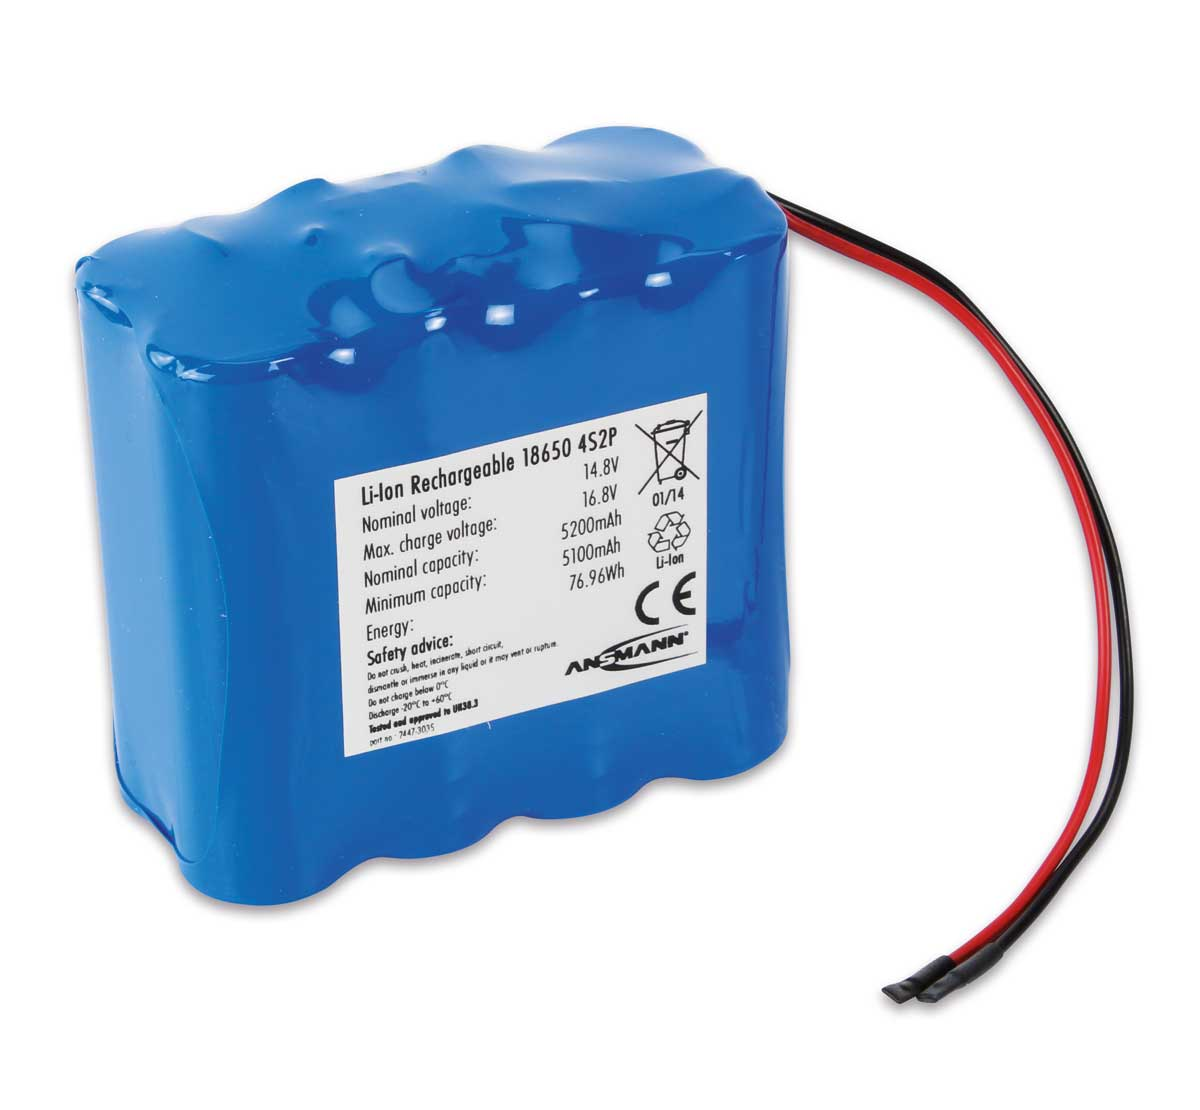 Ansmann Industrial 4S2P 14.8V 5200mAh Rechargeable Li-ion Battery Pack